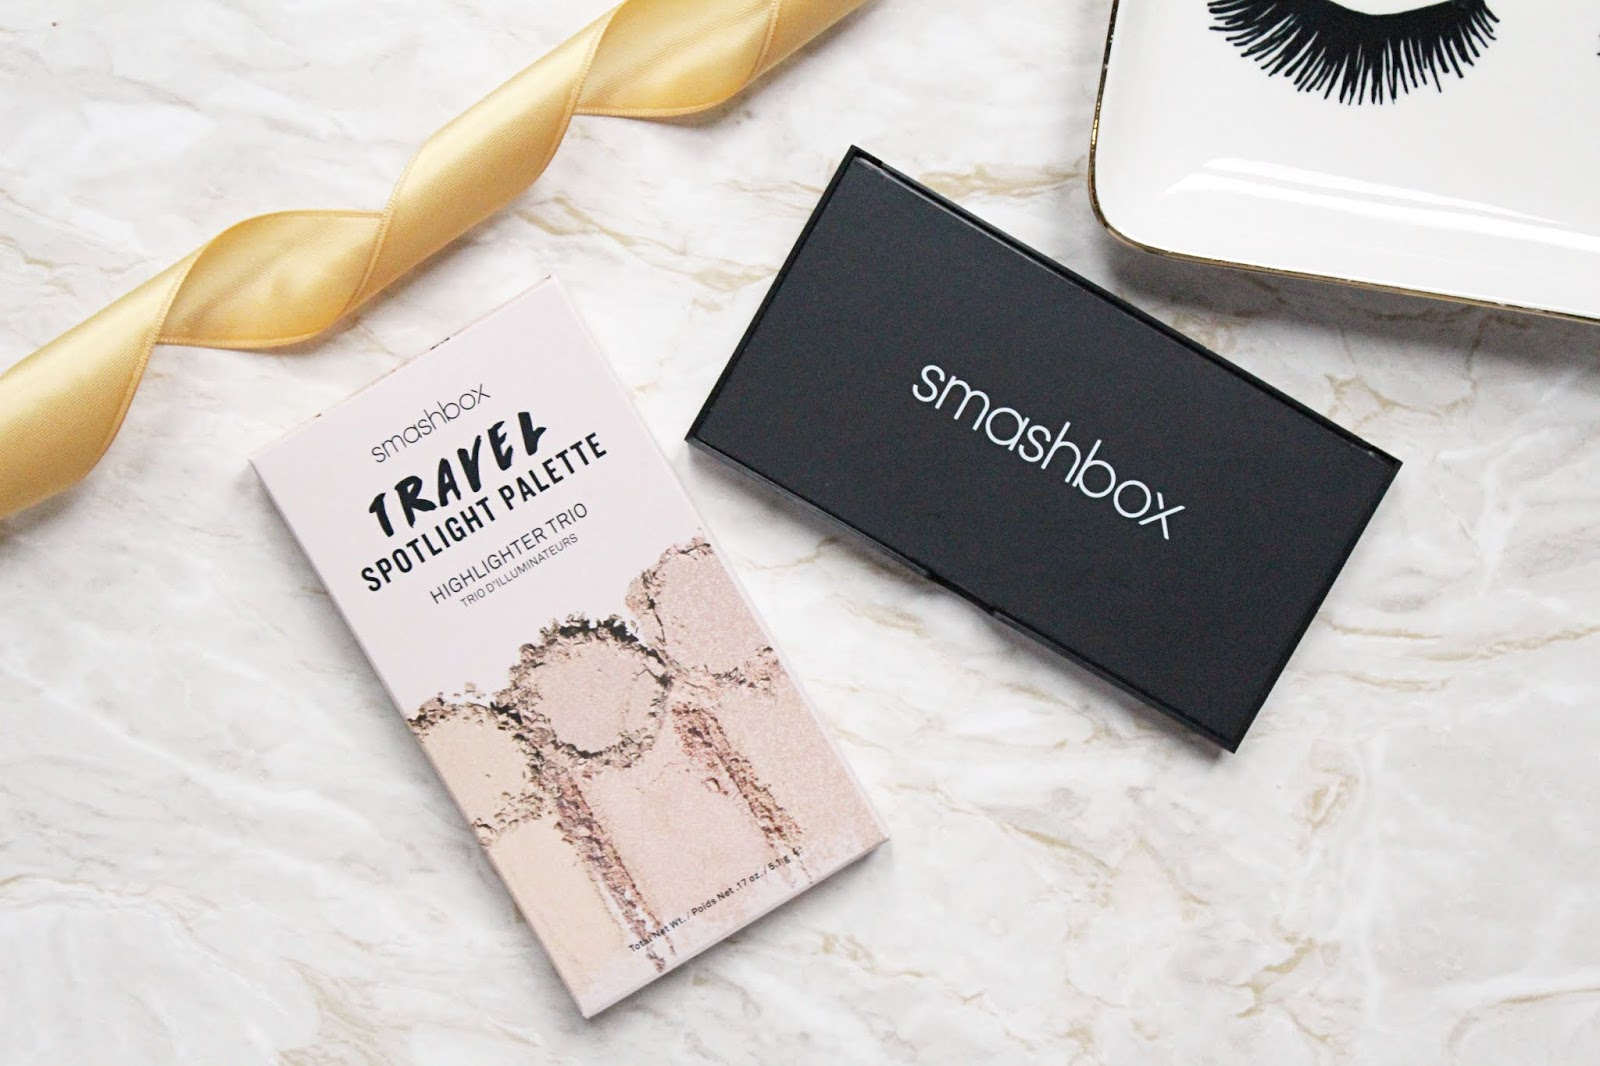 Smashbox Travel Spotlight Palette